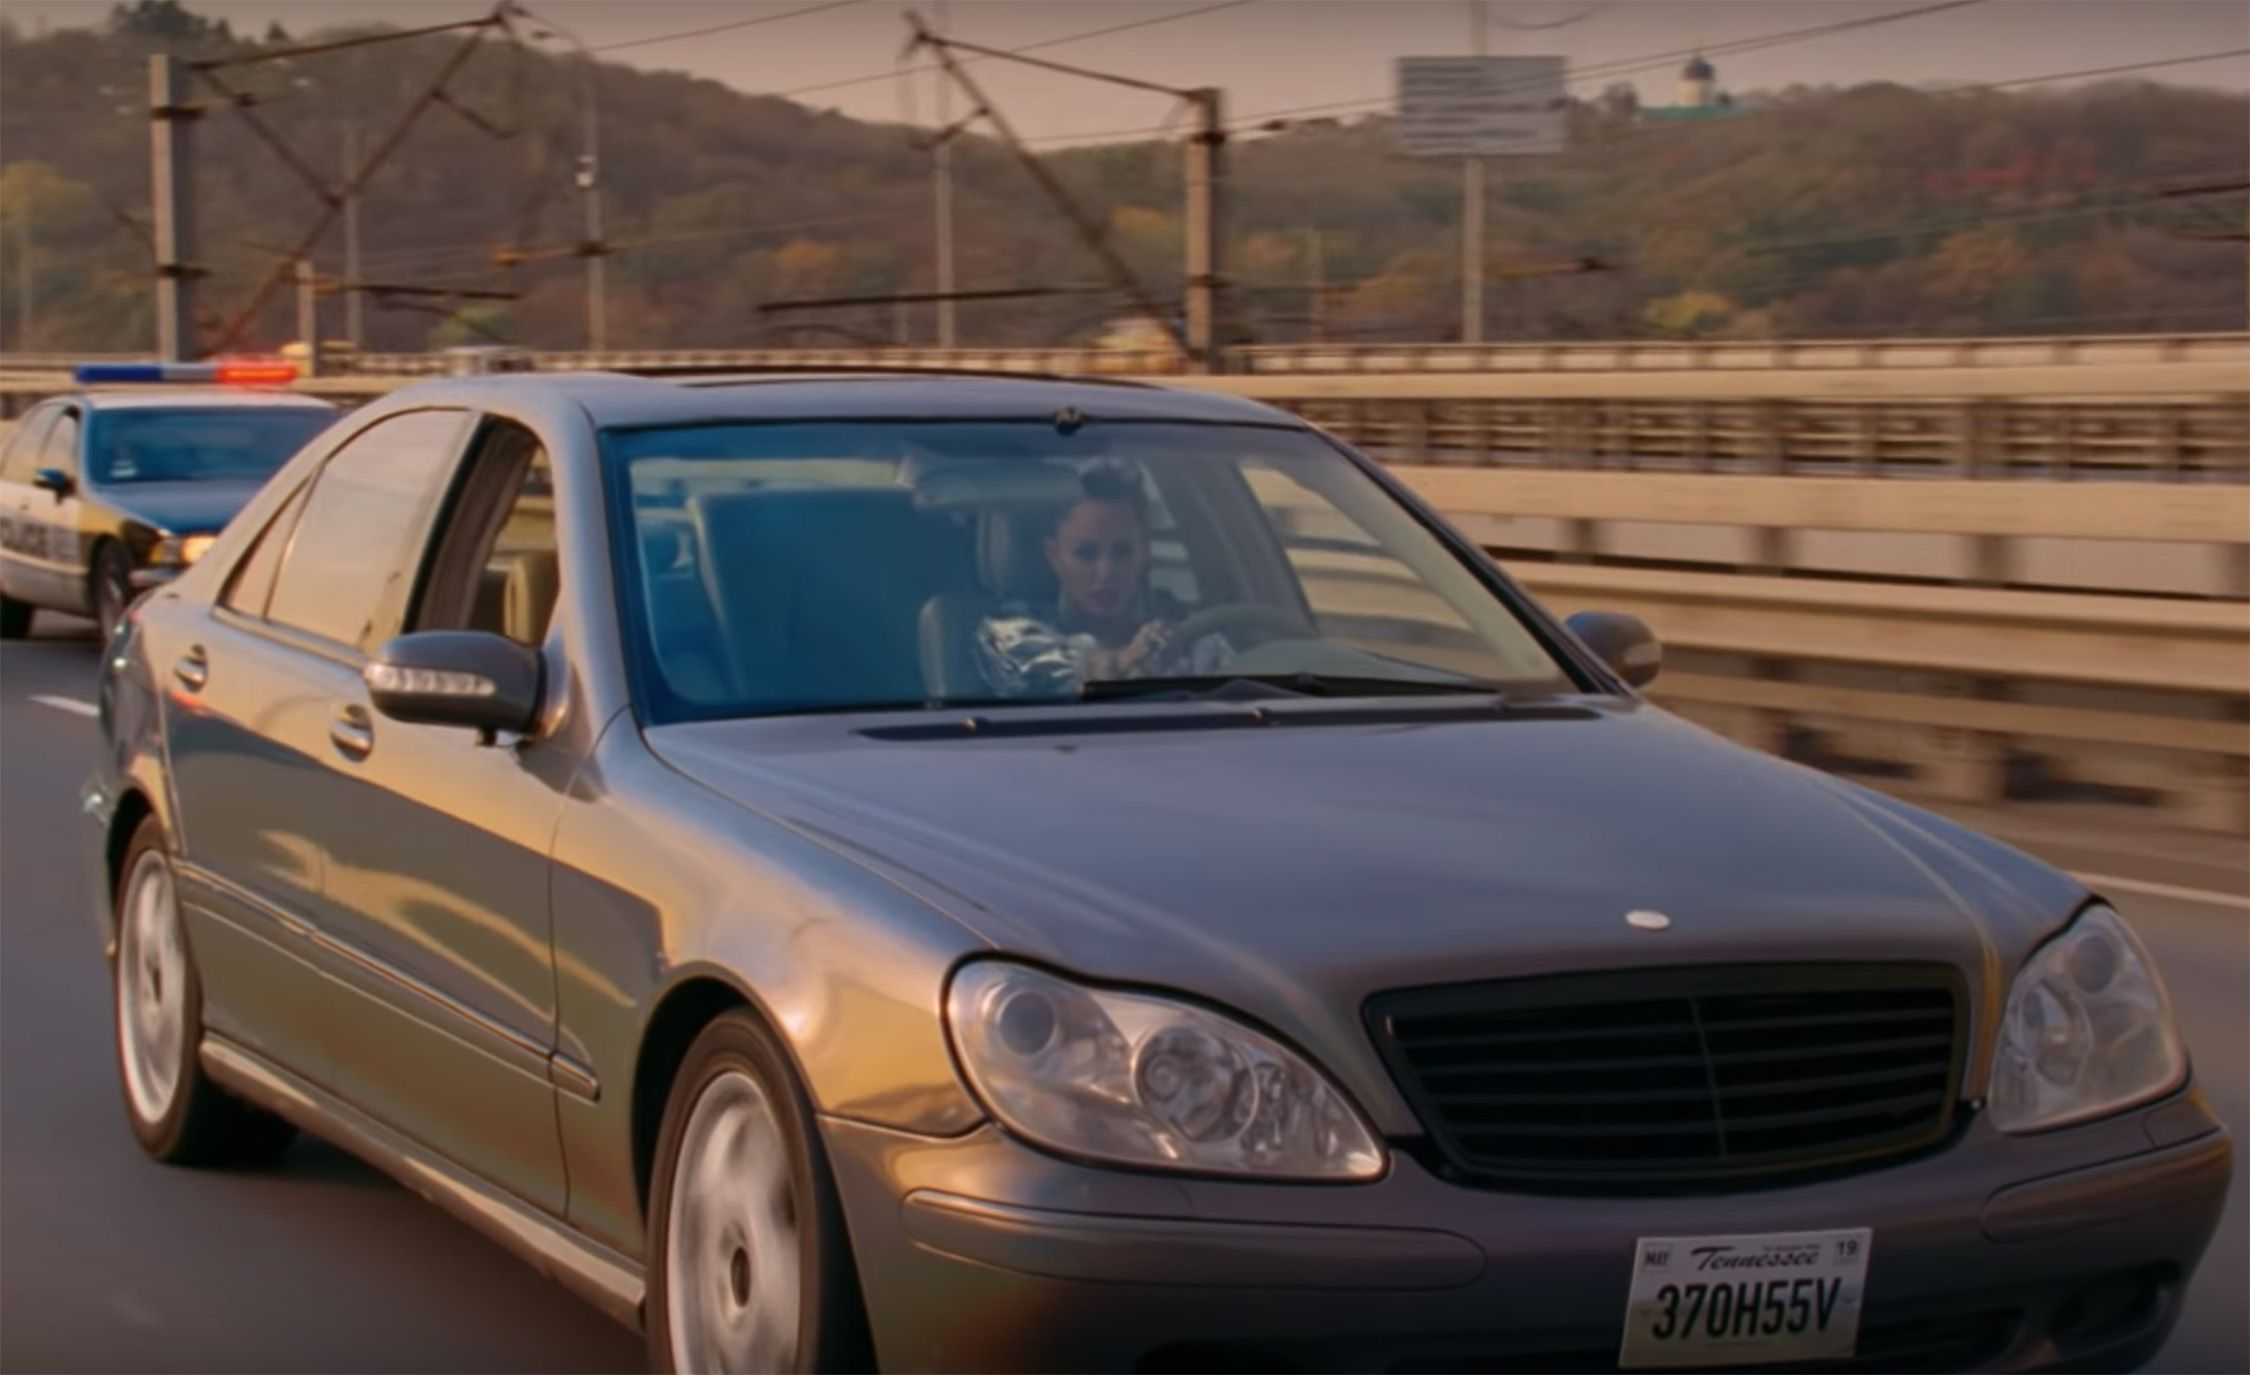 Miley Cyrus Music Video Mercedes Benz S Class Gets Wrecked